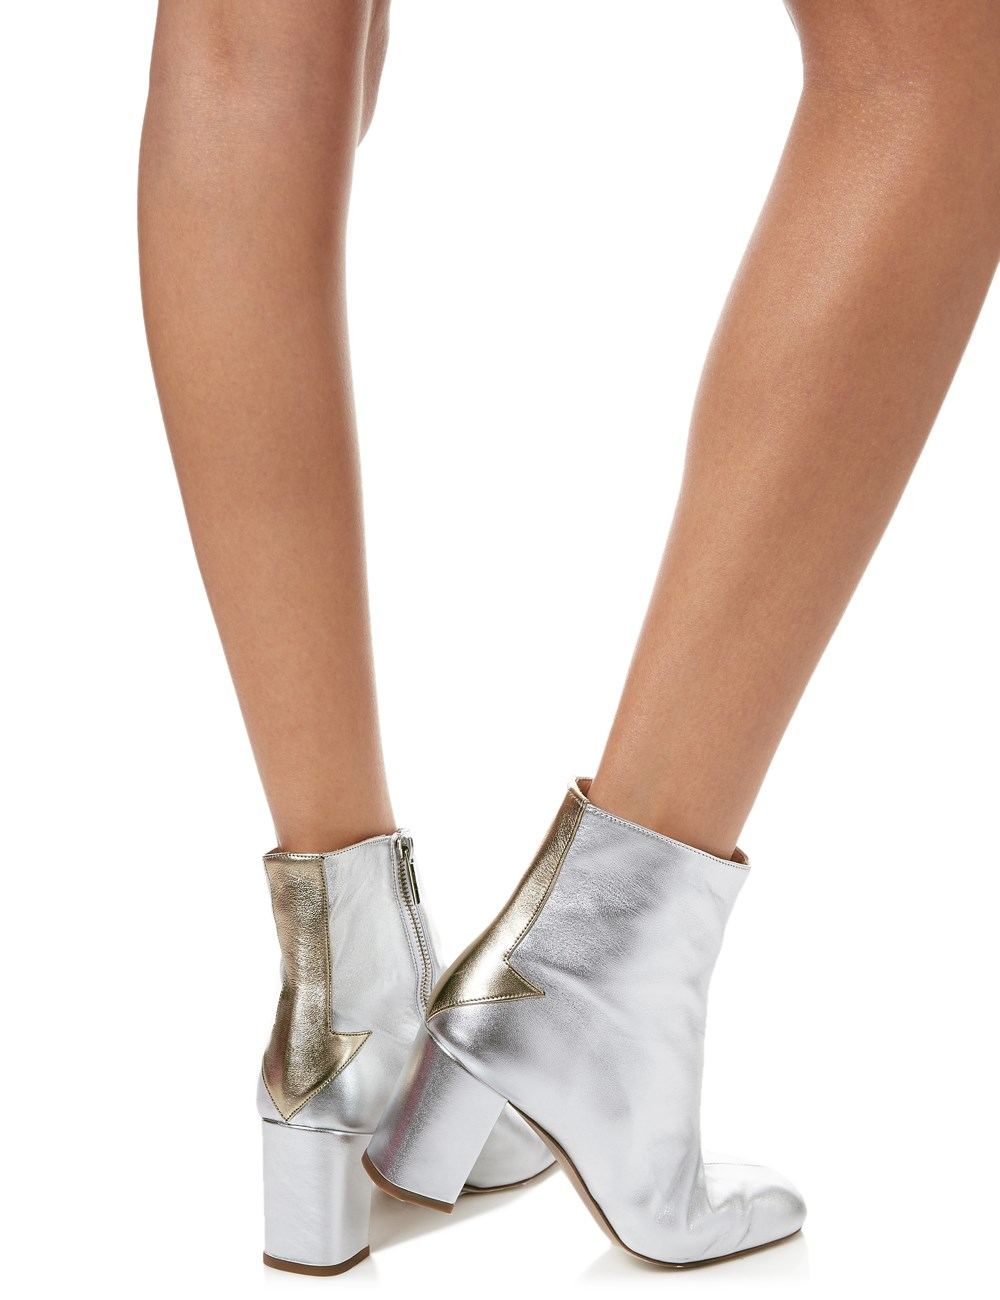 Camilla Elphick Silver Lining Ankle Boots In Metallic Lyst